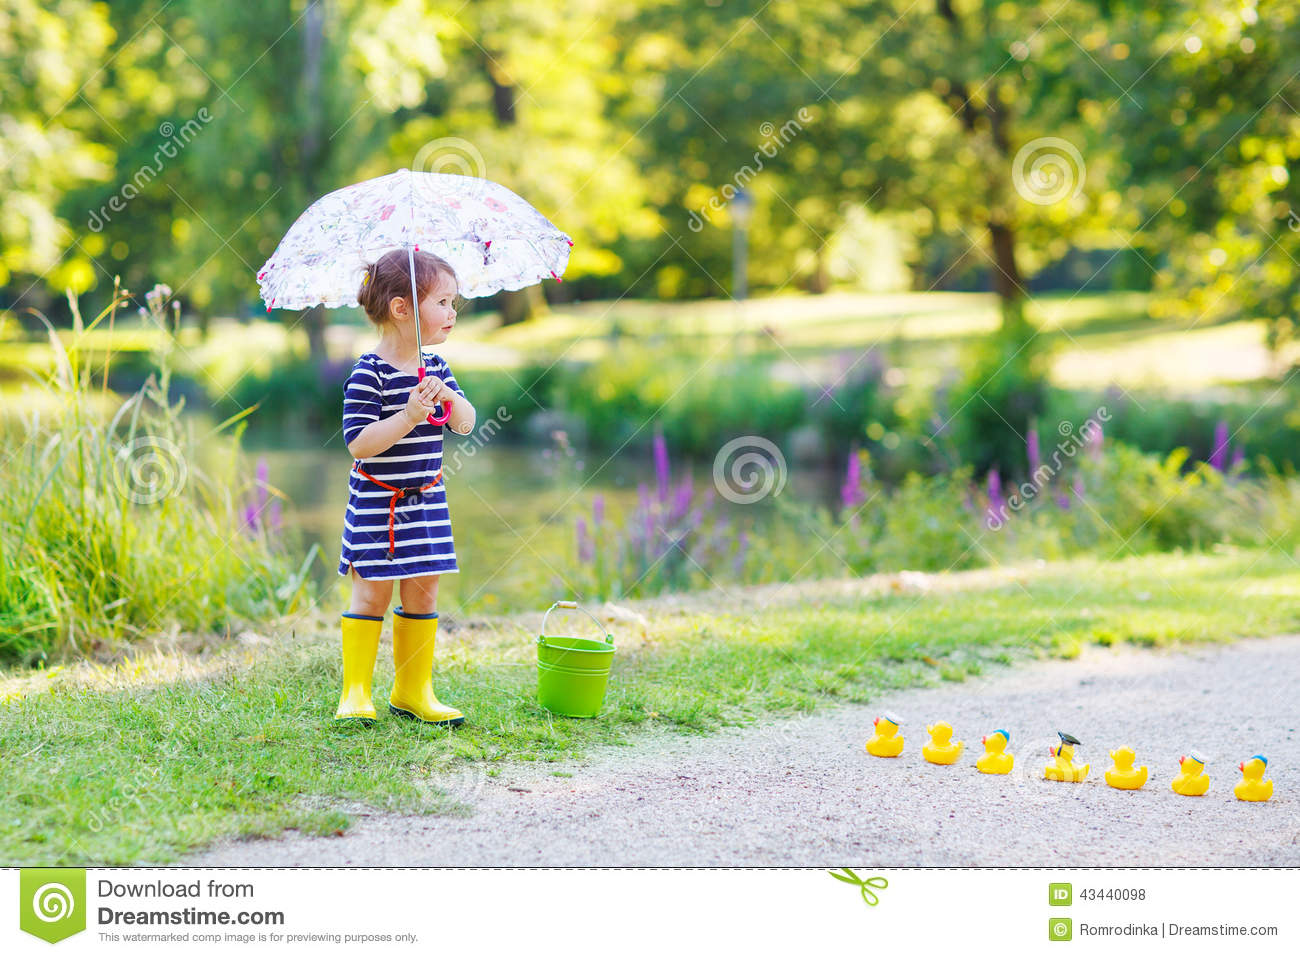 Adorable Little Child In Yellow Rain Boots And Umbrella In